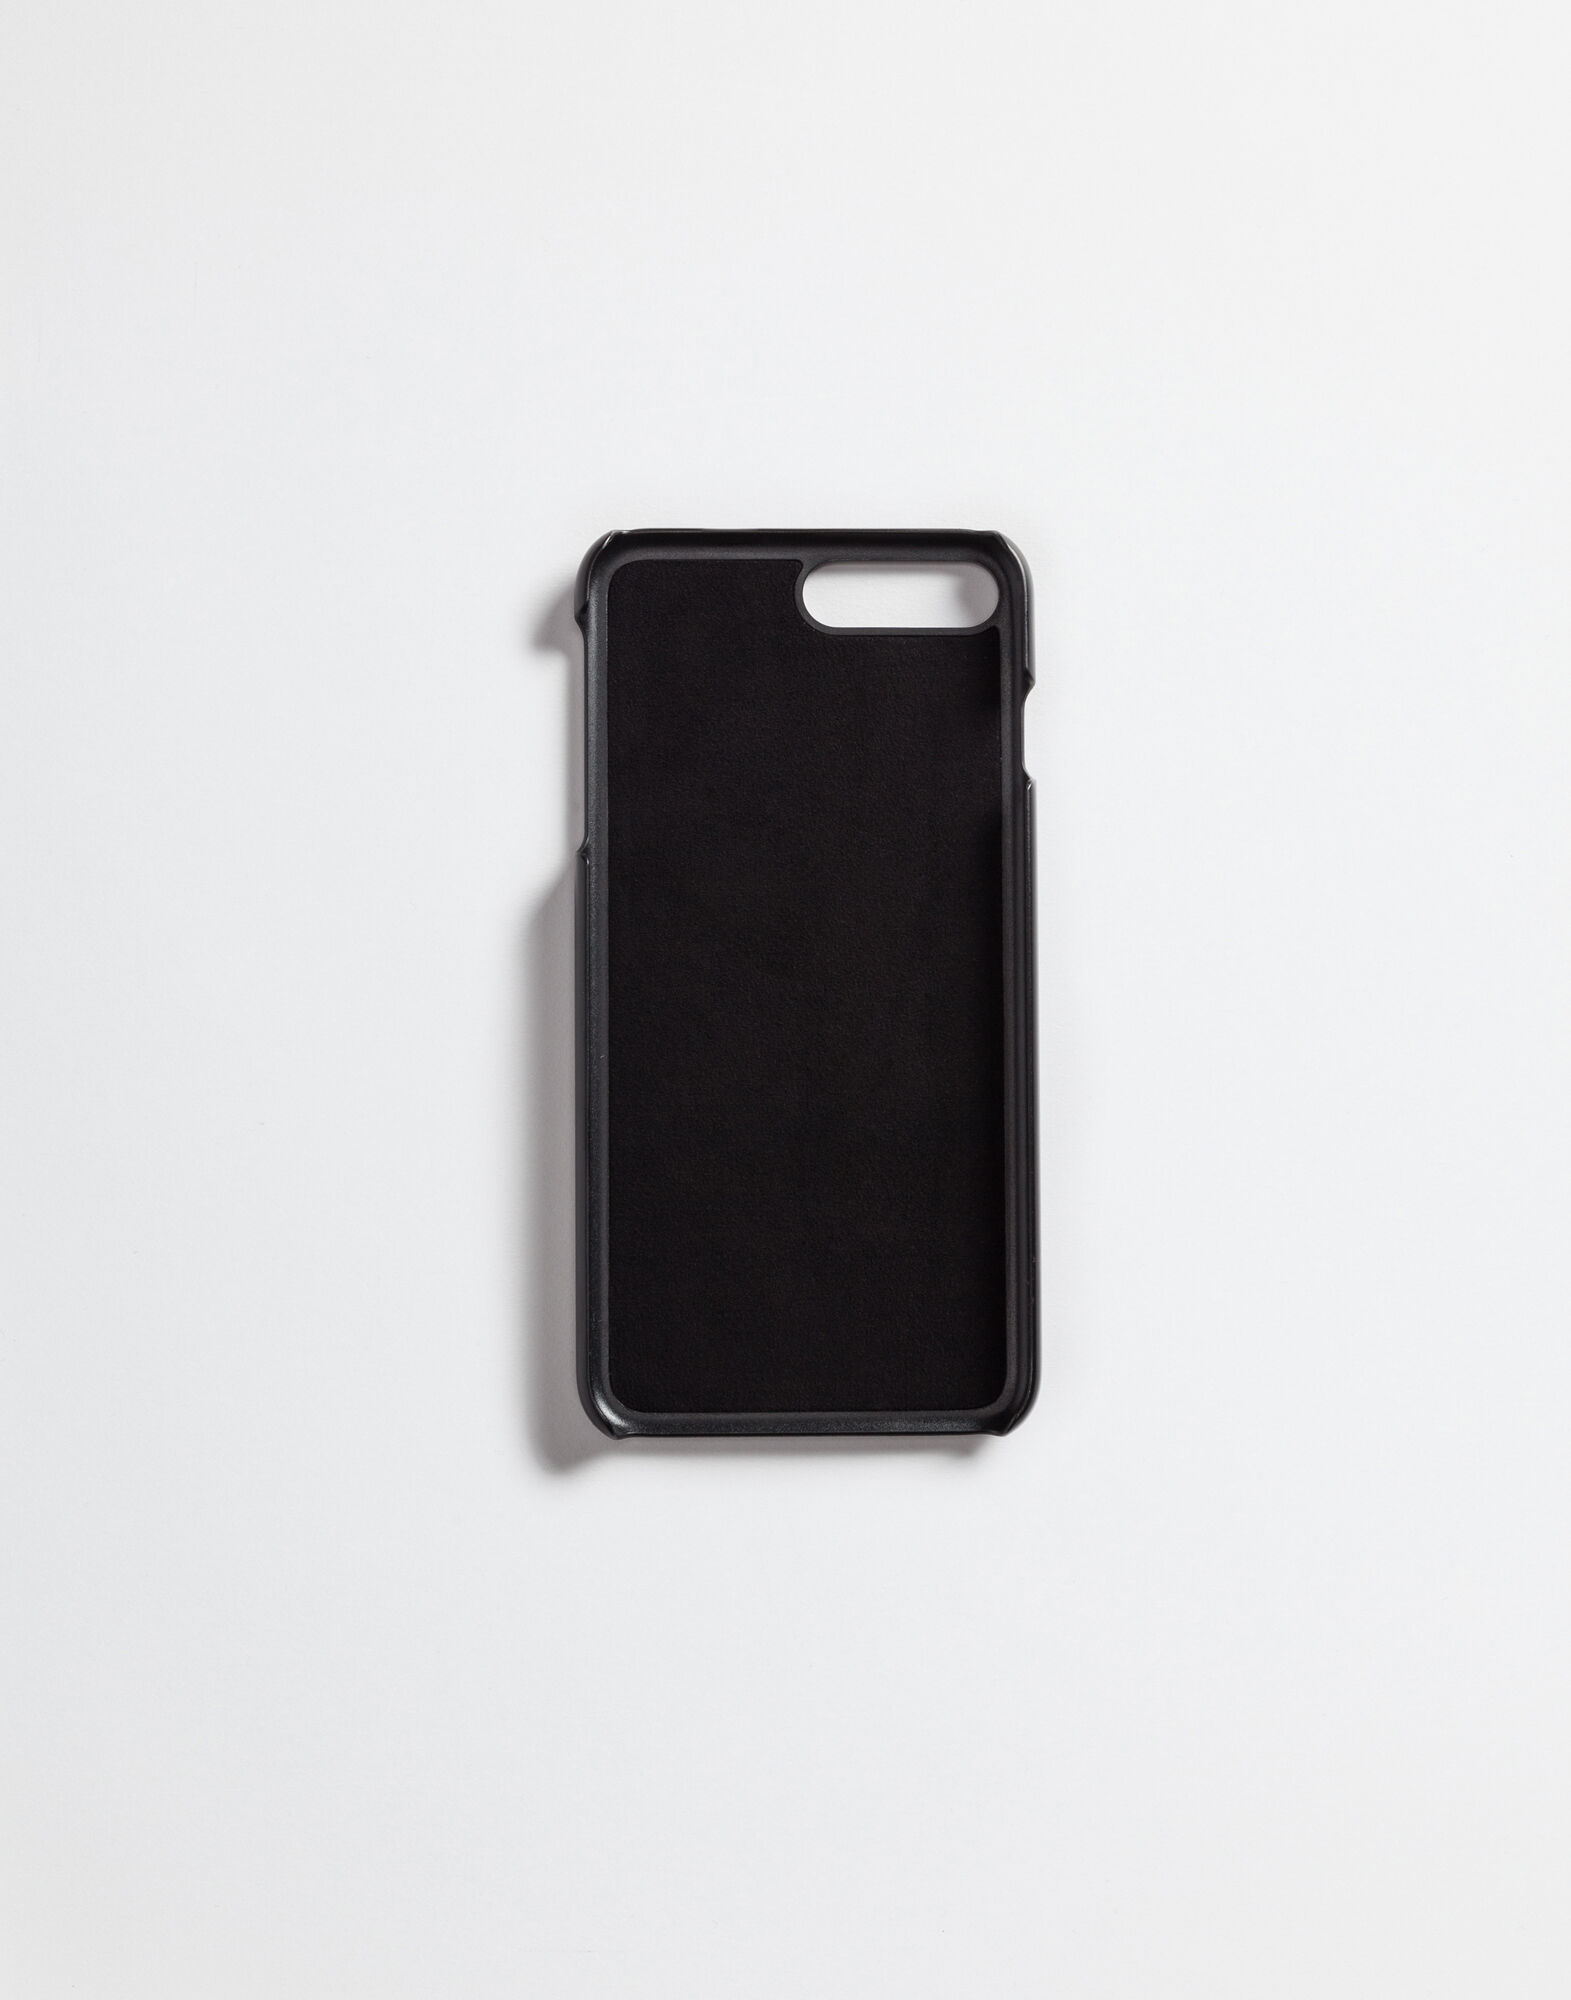 IPHONE 7 PLUS COVER WITH CRESPO LEO DETAILS